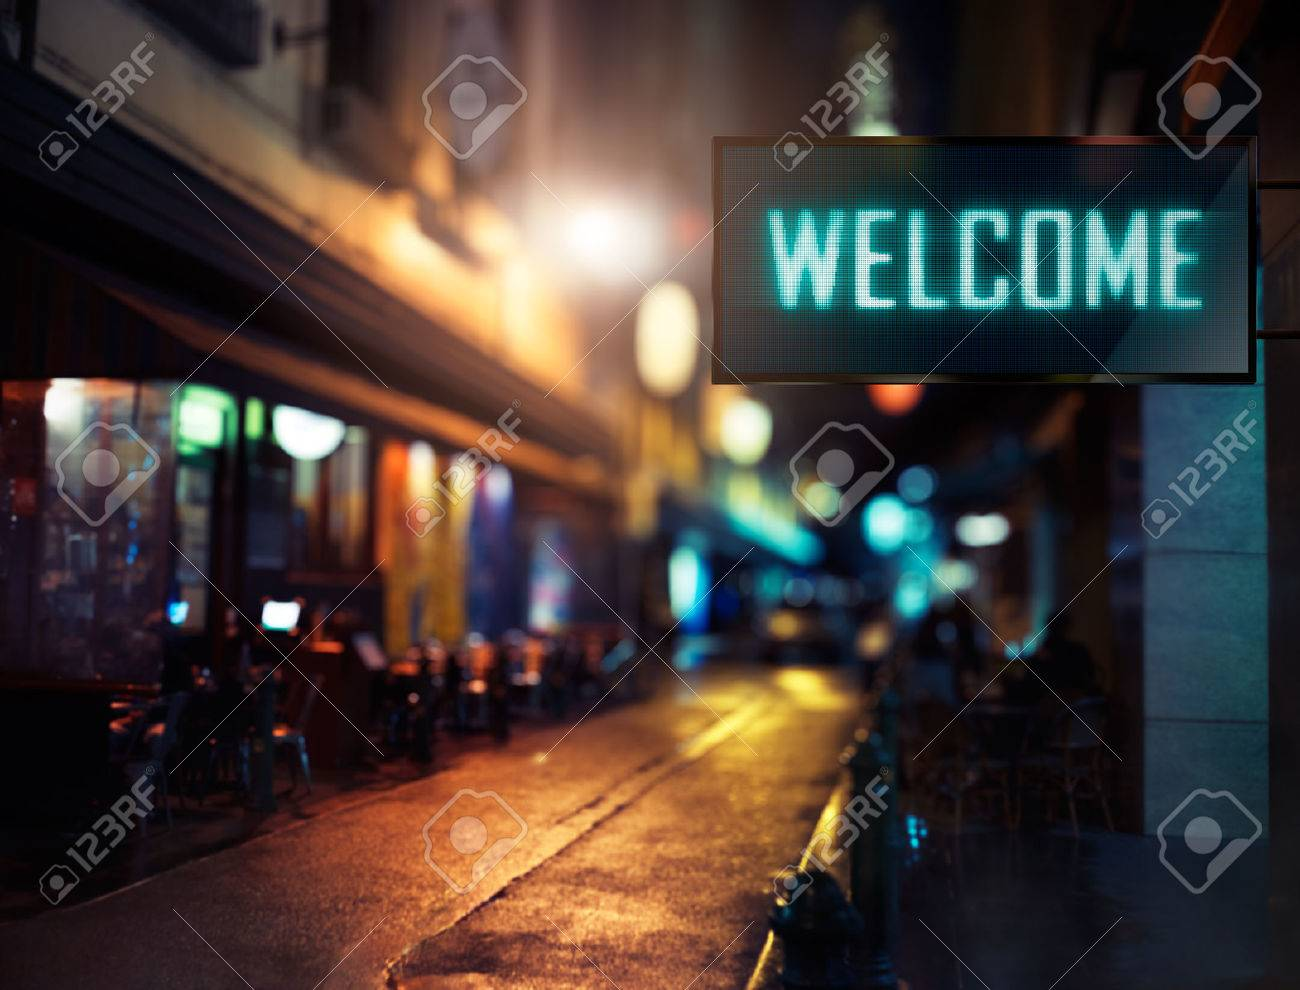 LED Display - Welcome signage - 53022914